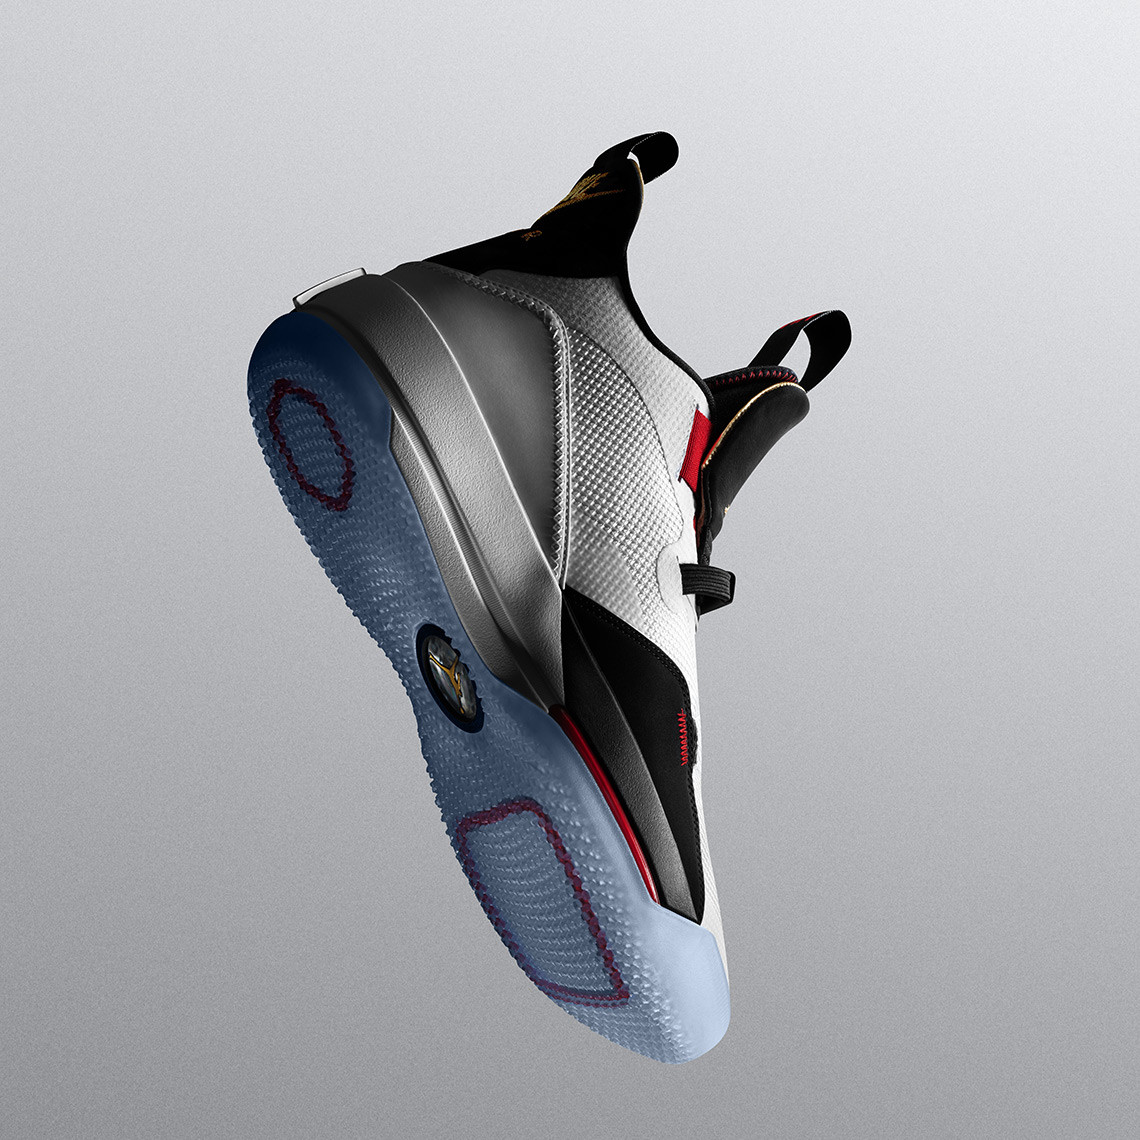 9ccbd04f949 Check for the Air Jordan XXXIII starting October 18 at select global  retailers and online. See images of the shoe, campaign featuring NBA  All-Star Victor ...